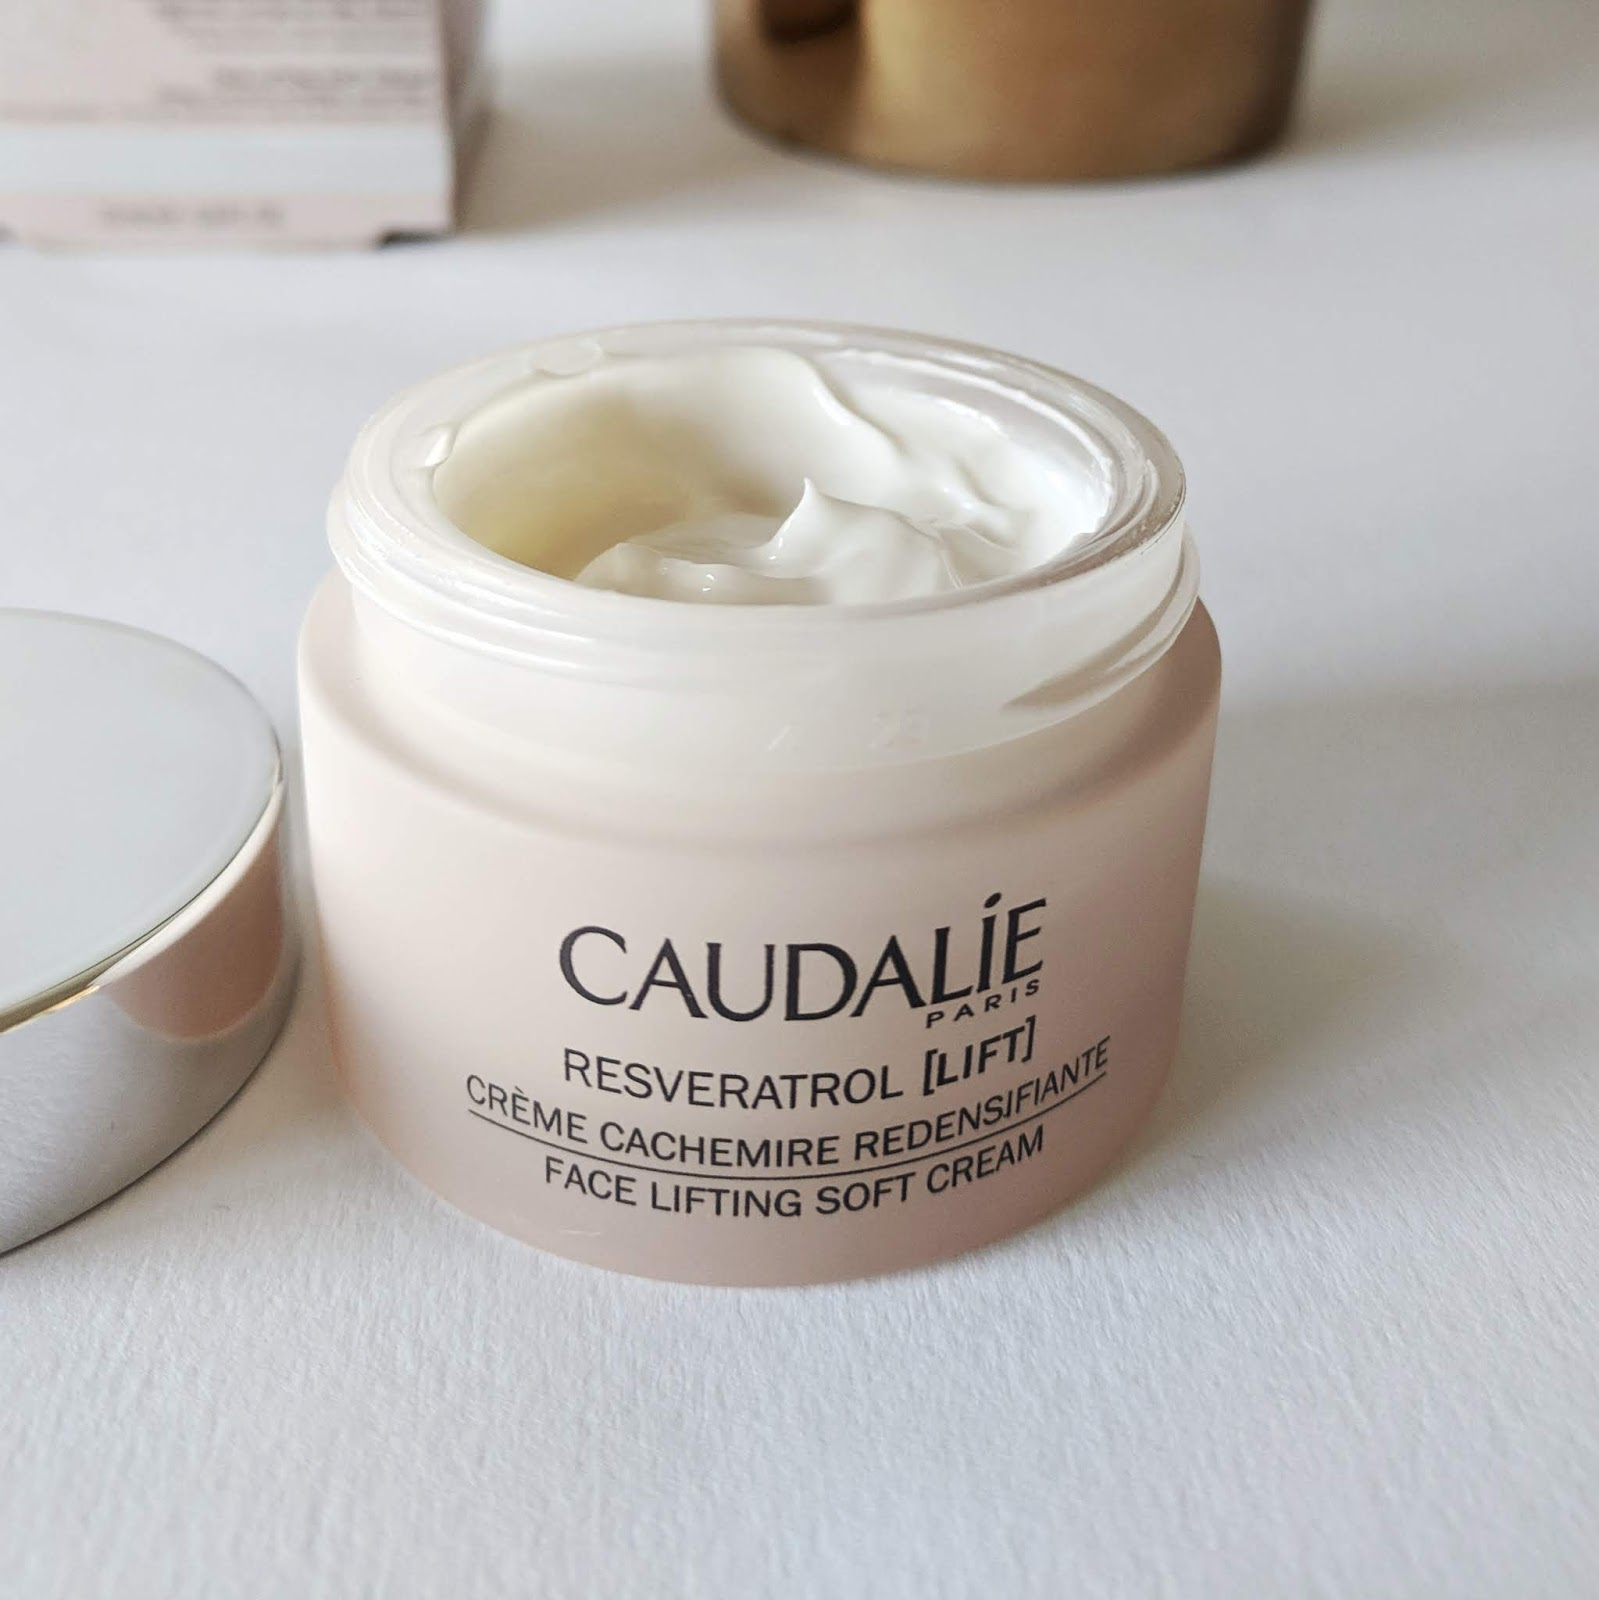 Image of a jar of Caudalie Resveratrol Lifting Cream - texture shot